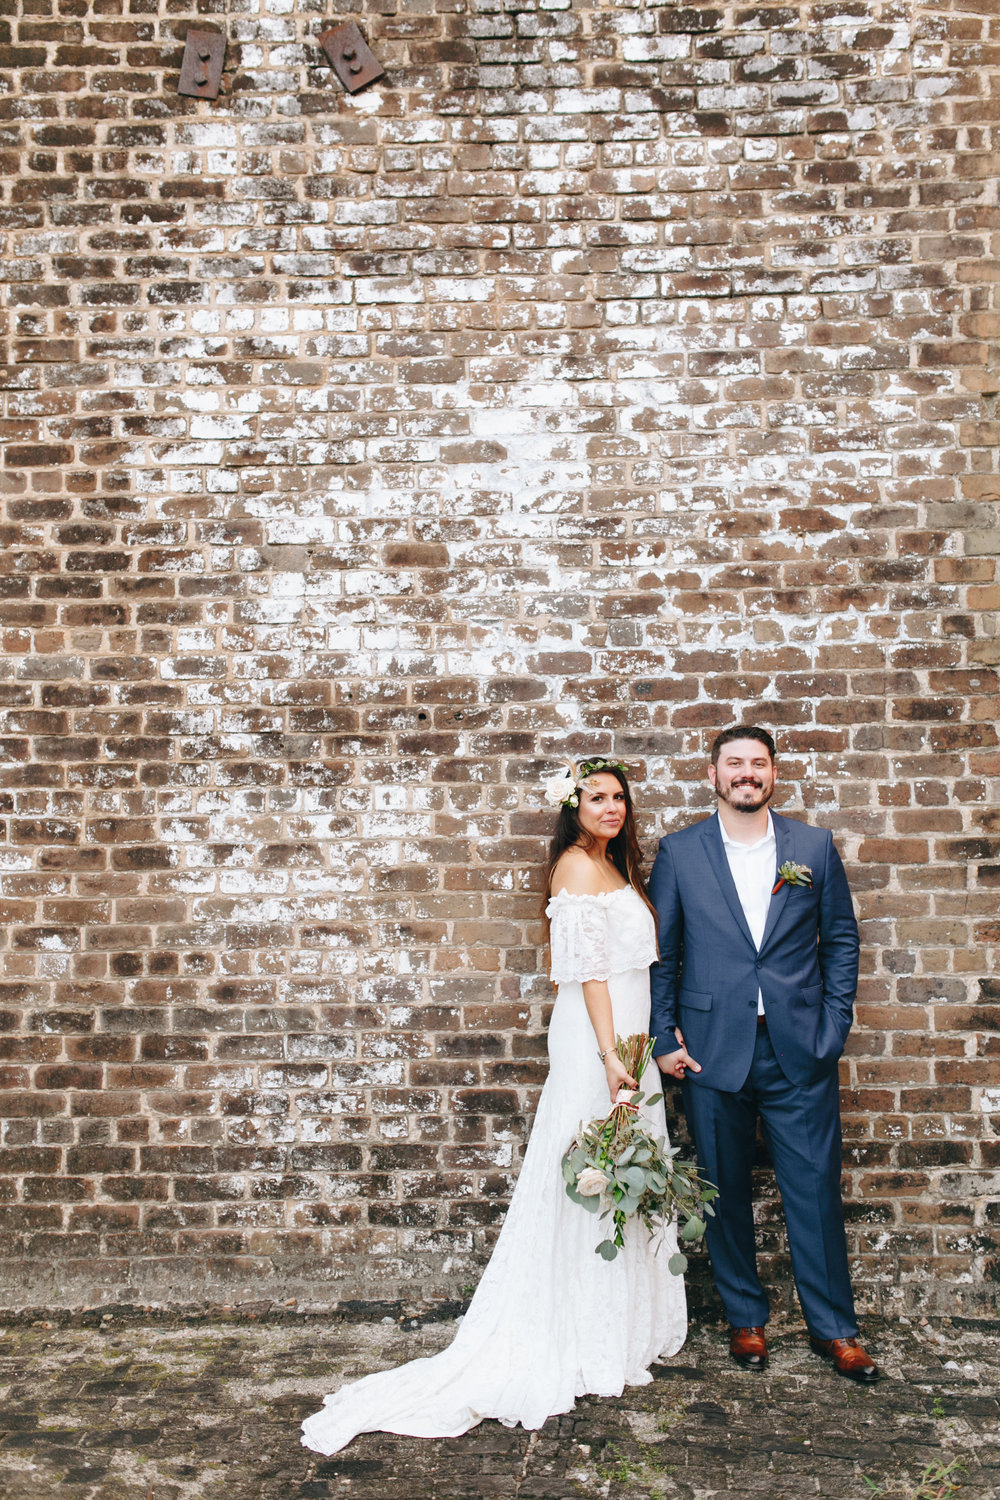 darling-juliet-photography-ivory-and-beau-bridal-boutique-savannah-wedding-dresses-savannah-bridal-gowns-daughters-of-simone-winnie-savannah-florist-boho-wedding-savannah-boho-wedding-roundhouse-railroad-musuem-wedding-35.jpg